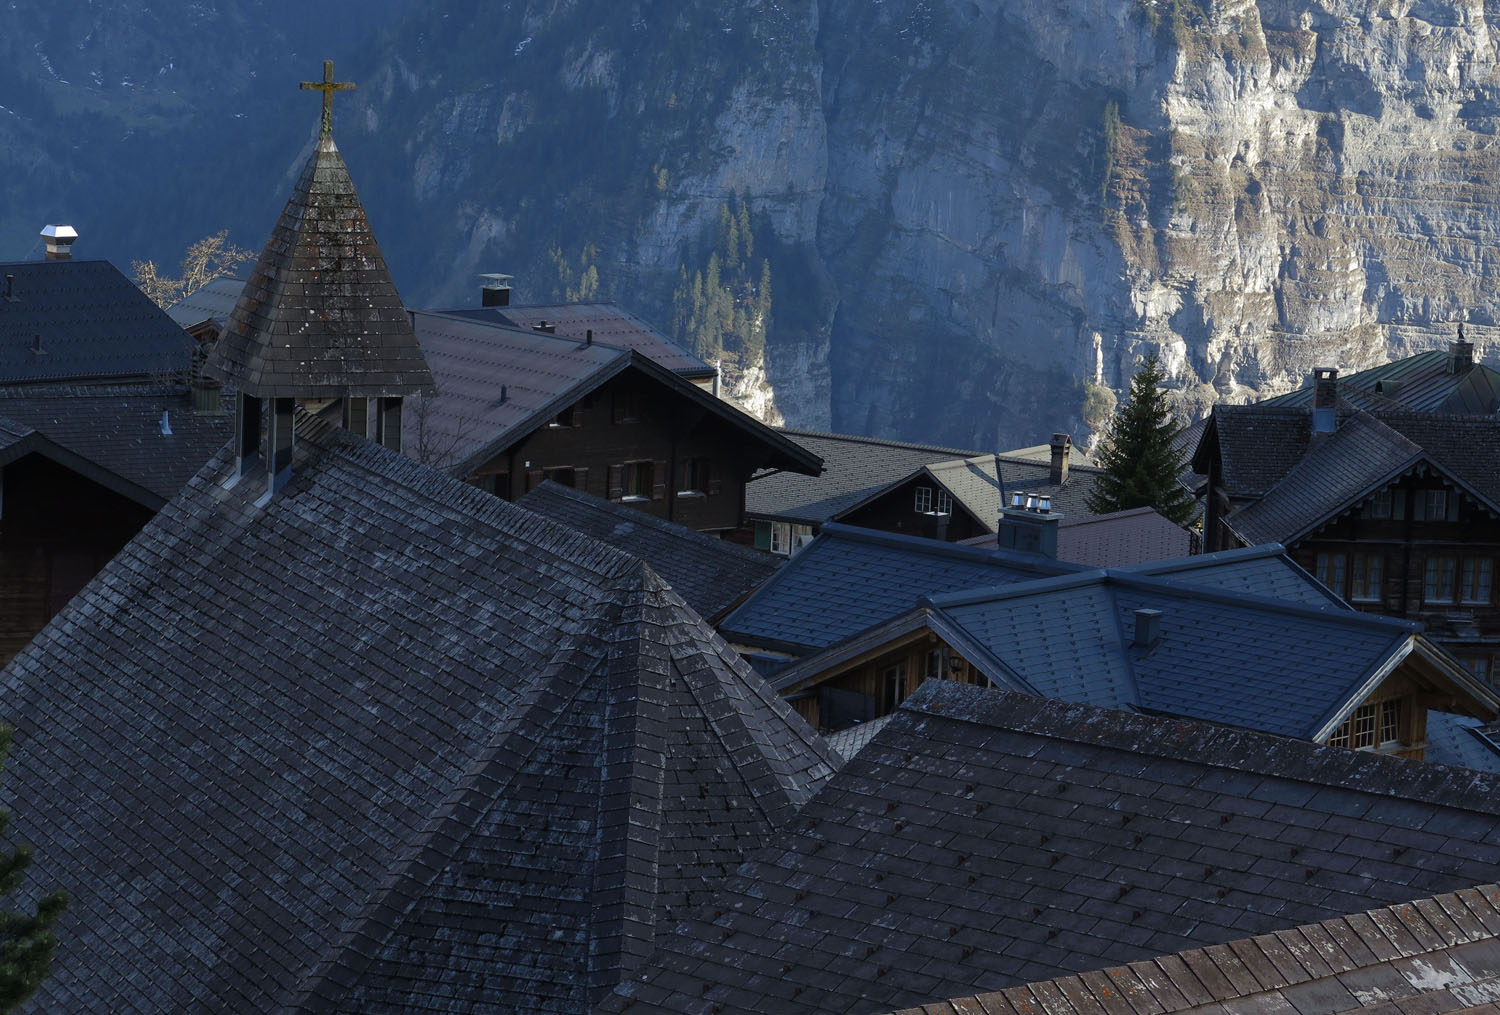 Switzerland-Bernese-Oberland-Murren-Roofs